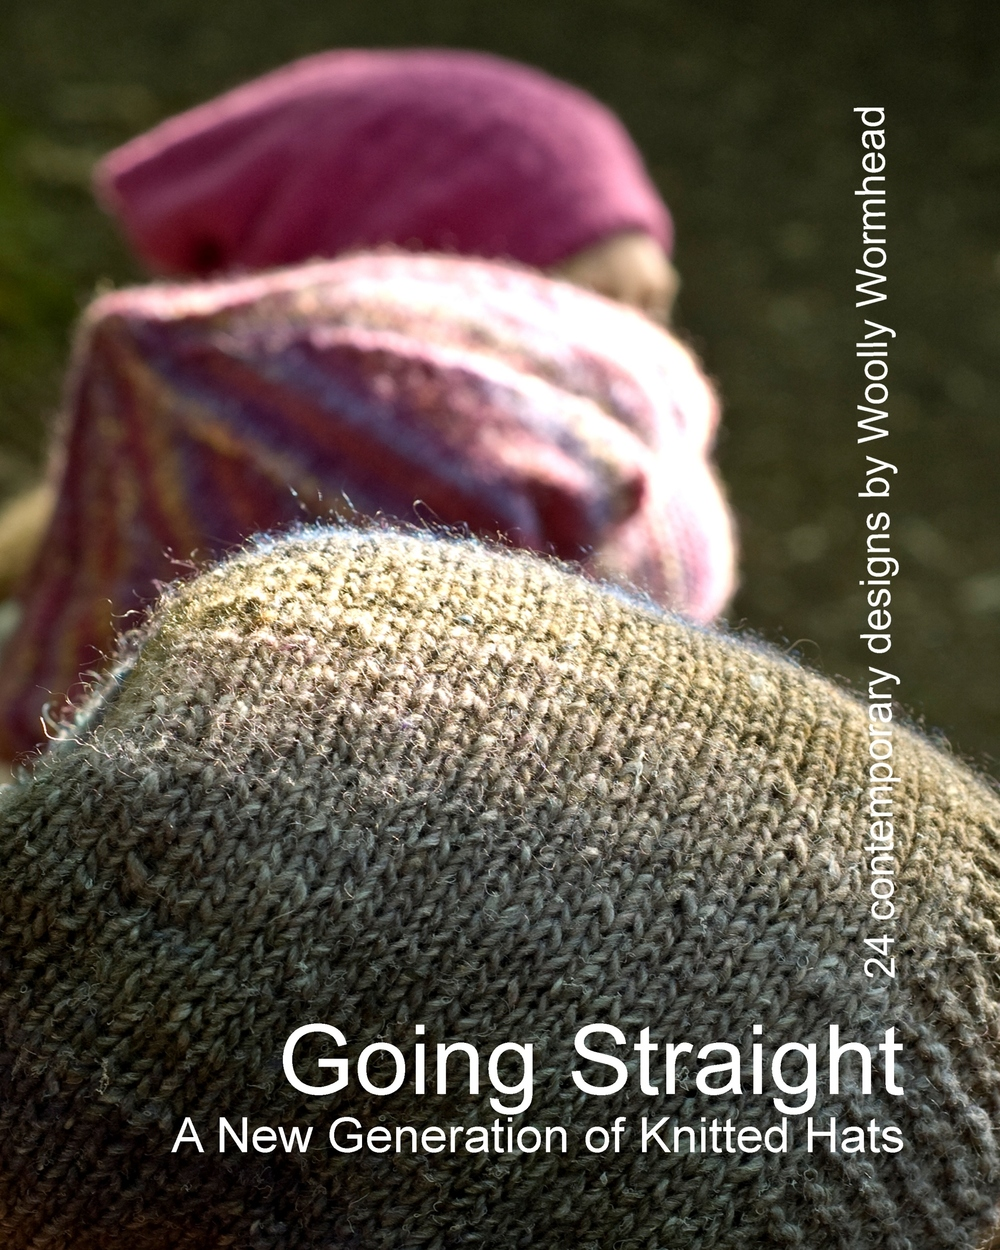 Going Straight - A New Generation of Knitted Hats